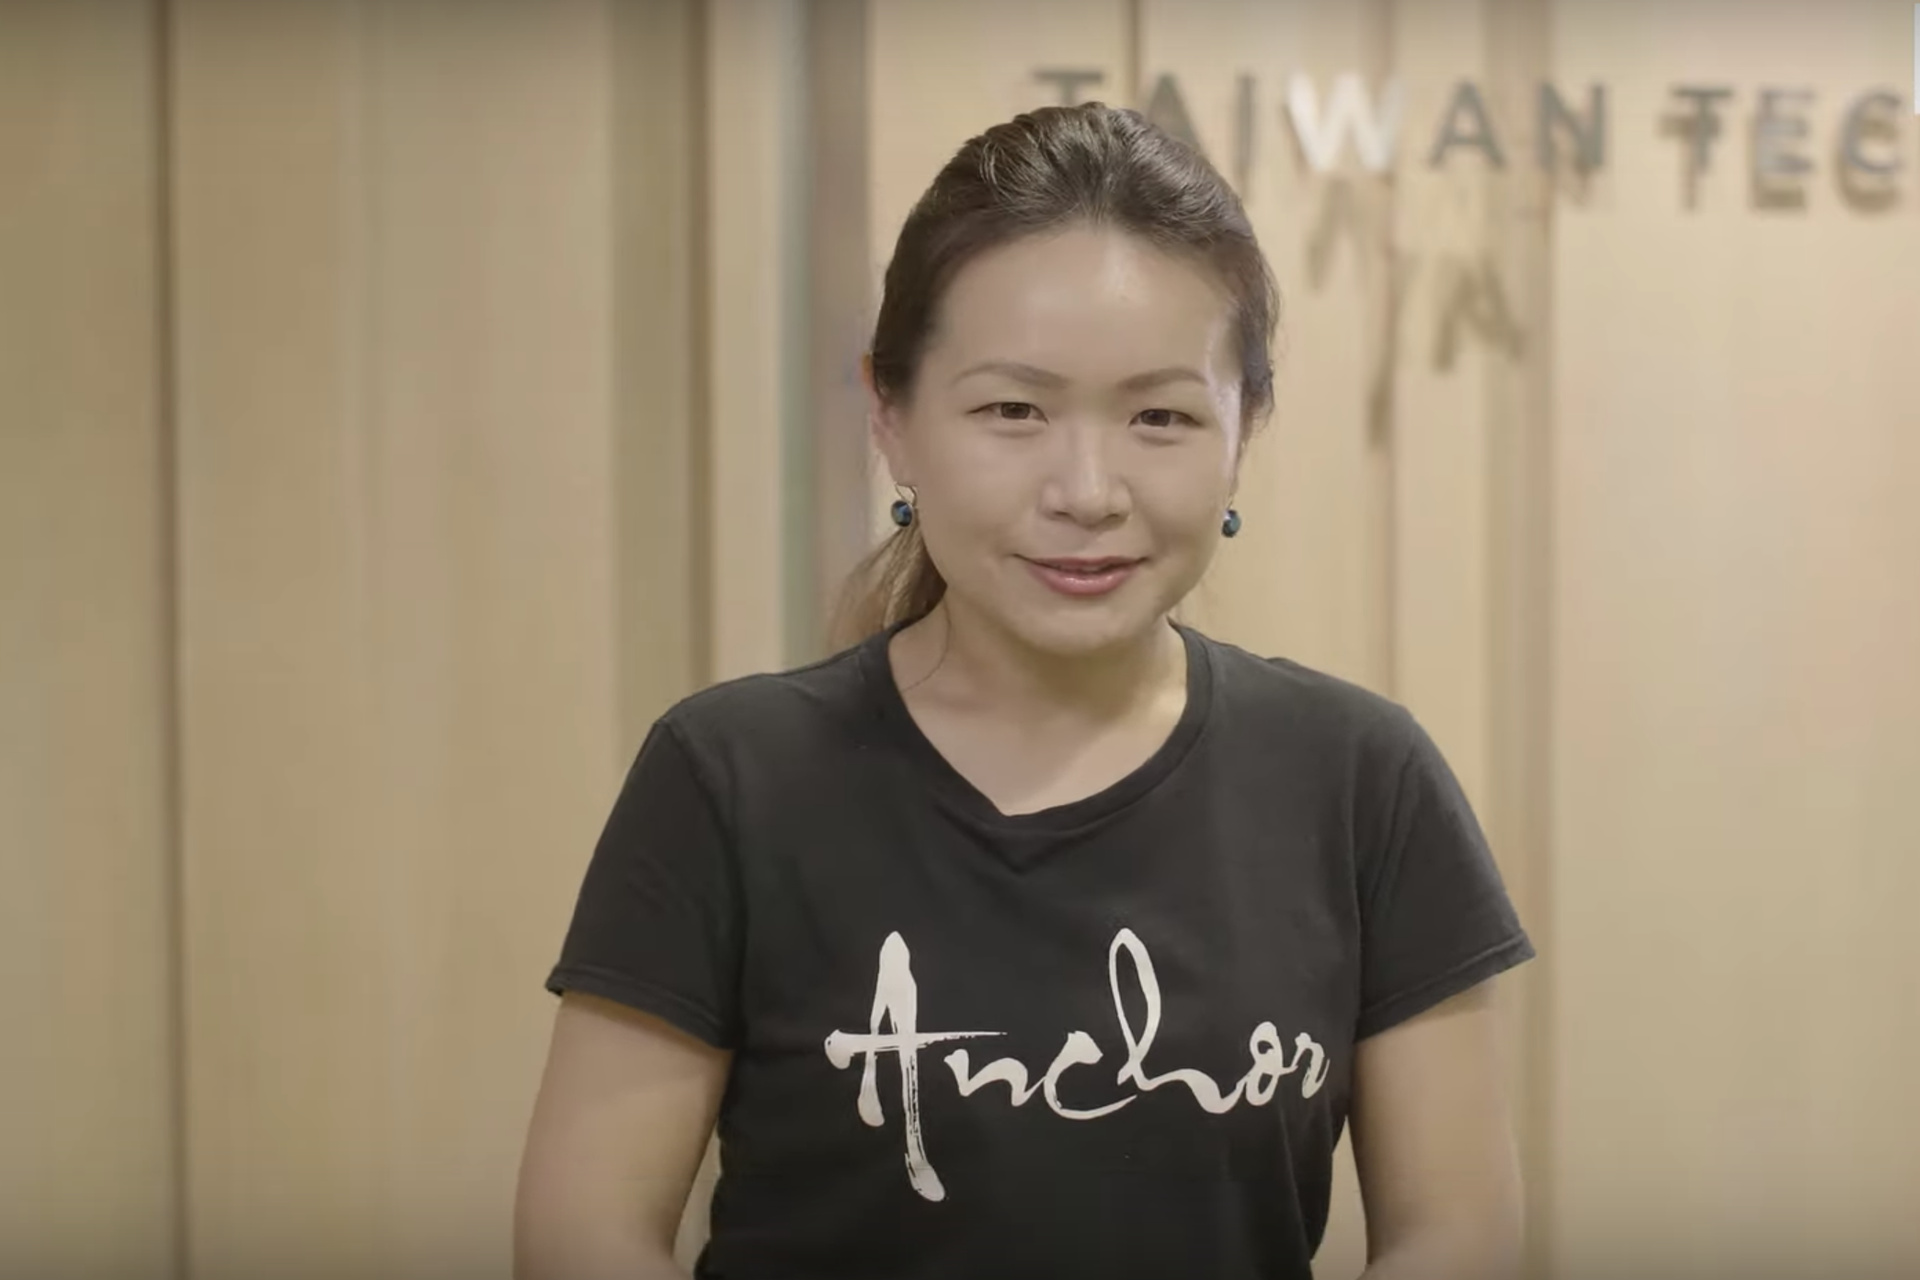 從台灣出發扎根- Founder/CEO of Anchor Taiwan-Elisa Chiu